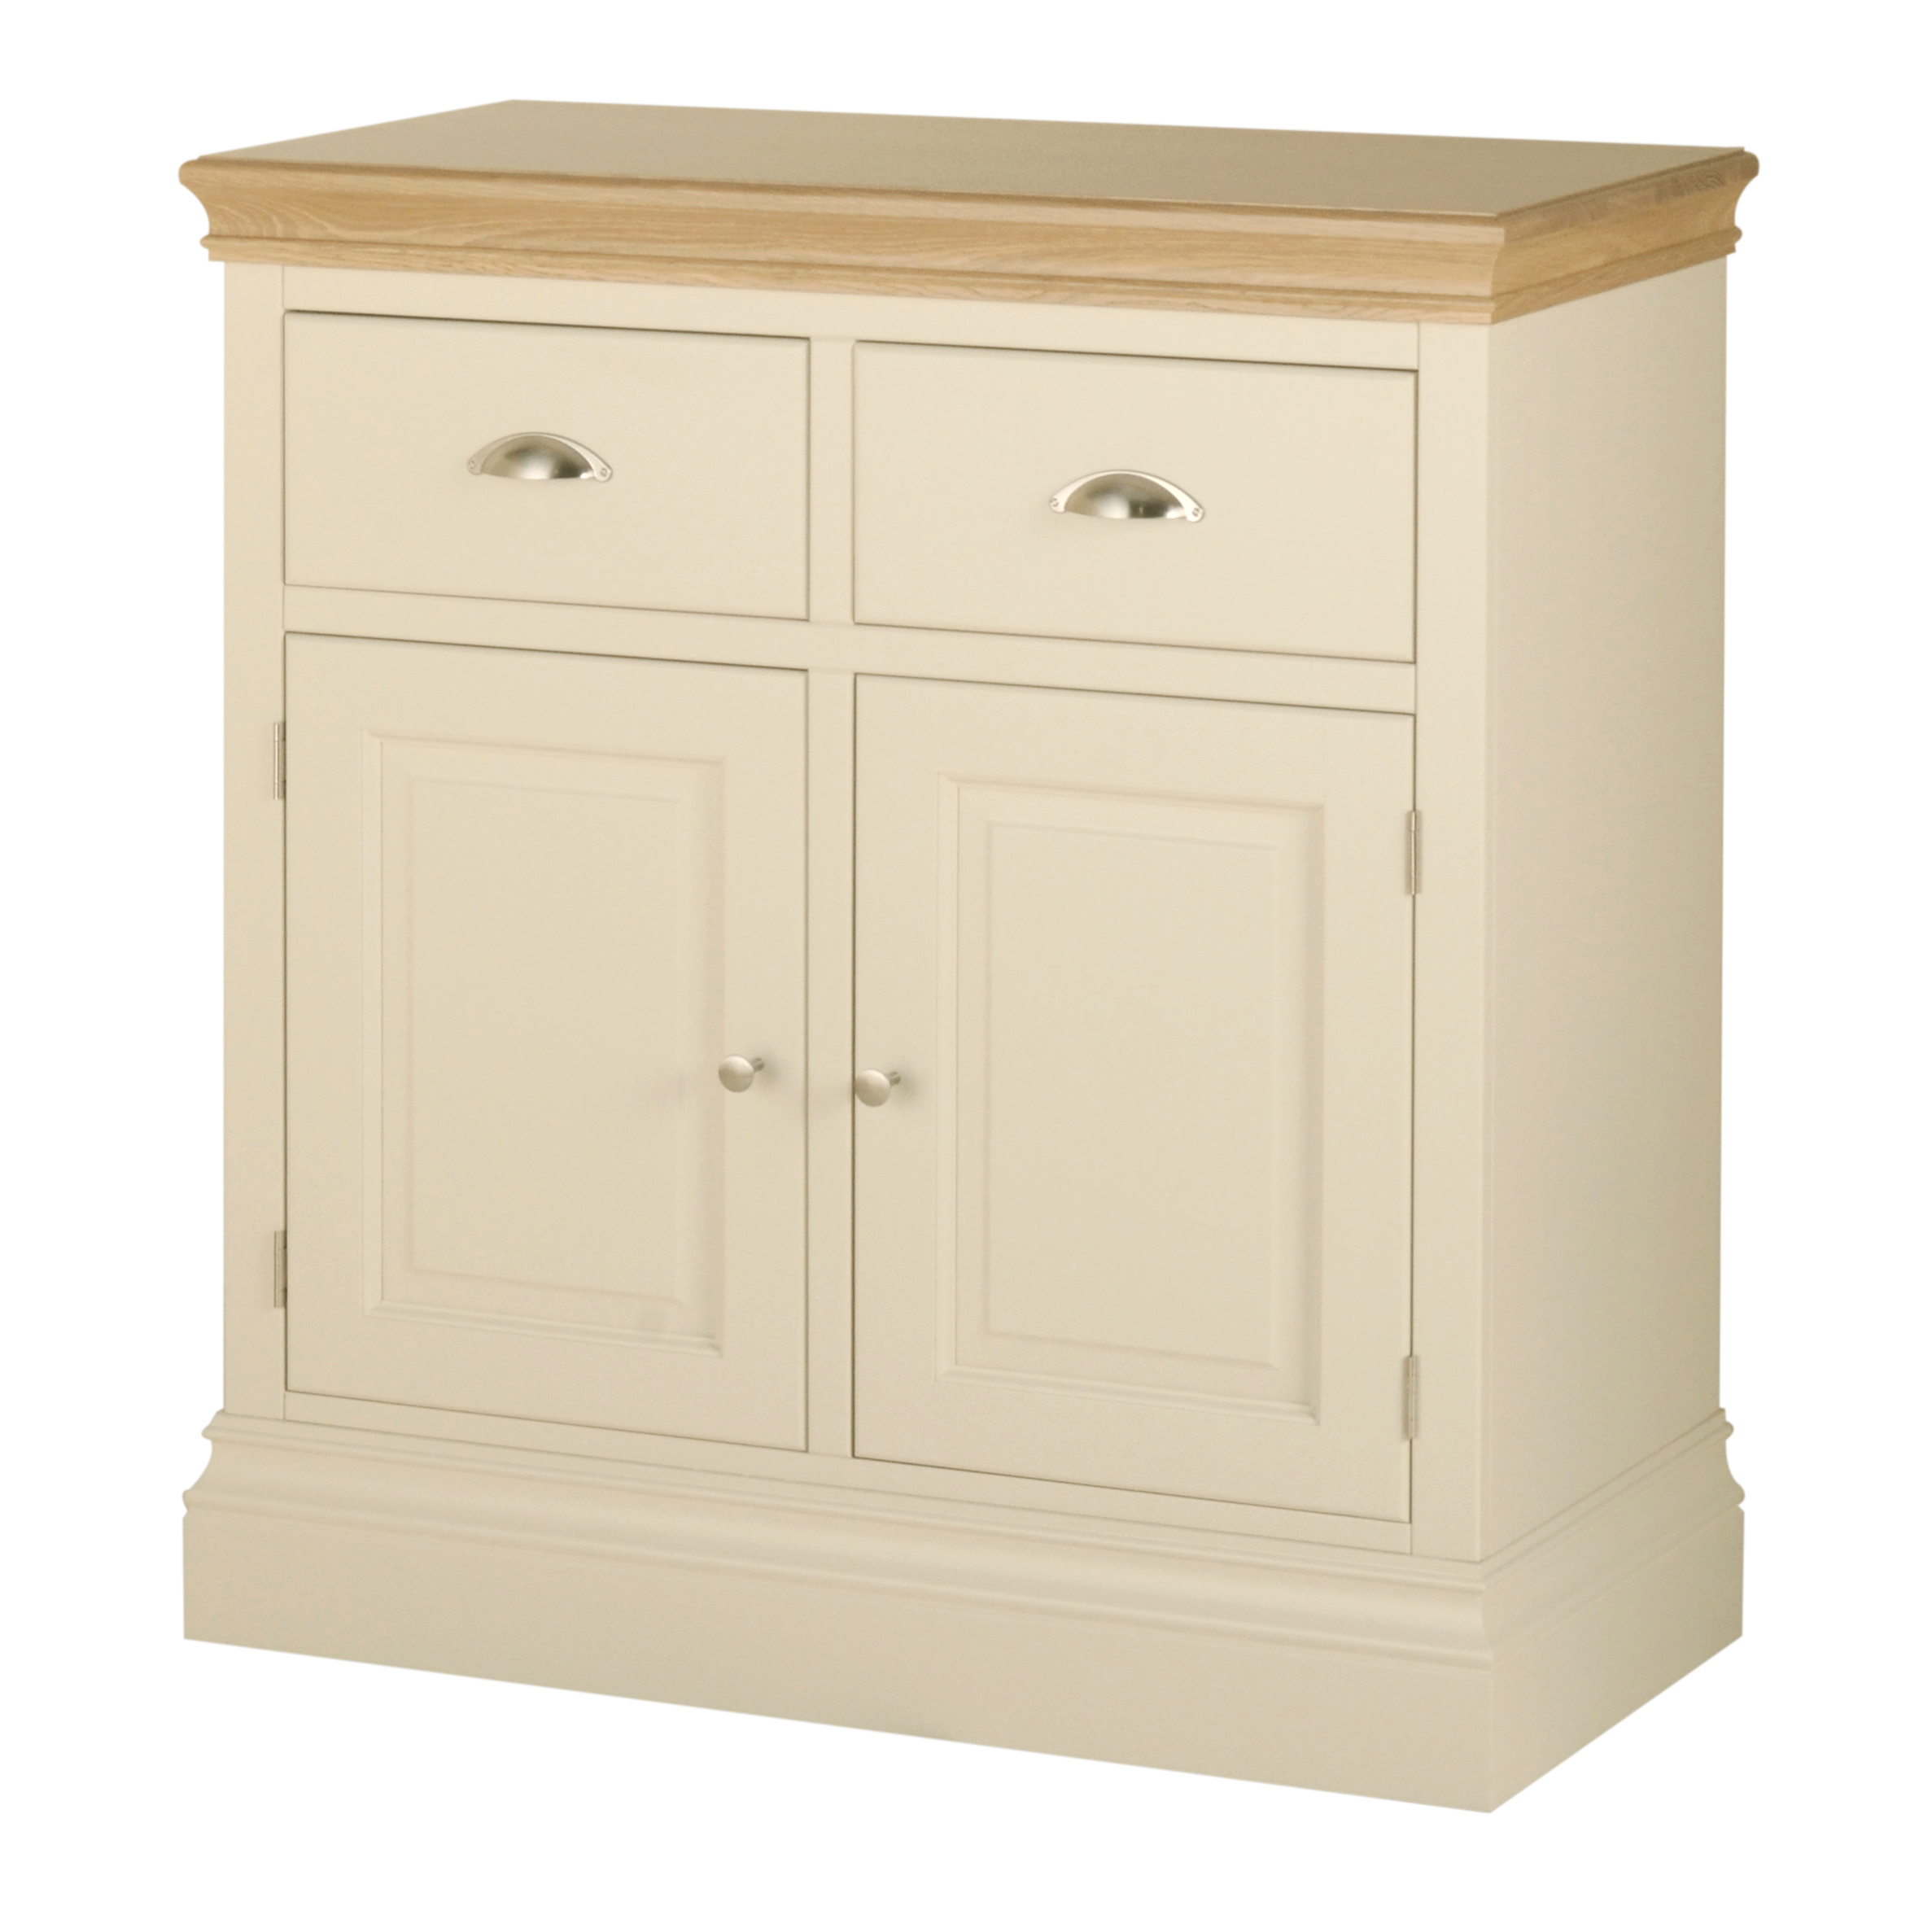 Current 2 Drawer Sideboards Regarding Buttermere Painted 2 Drawer Sideboard – Cumbria Oak (View 3 of 20)